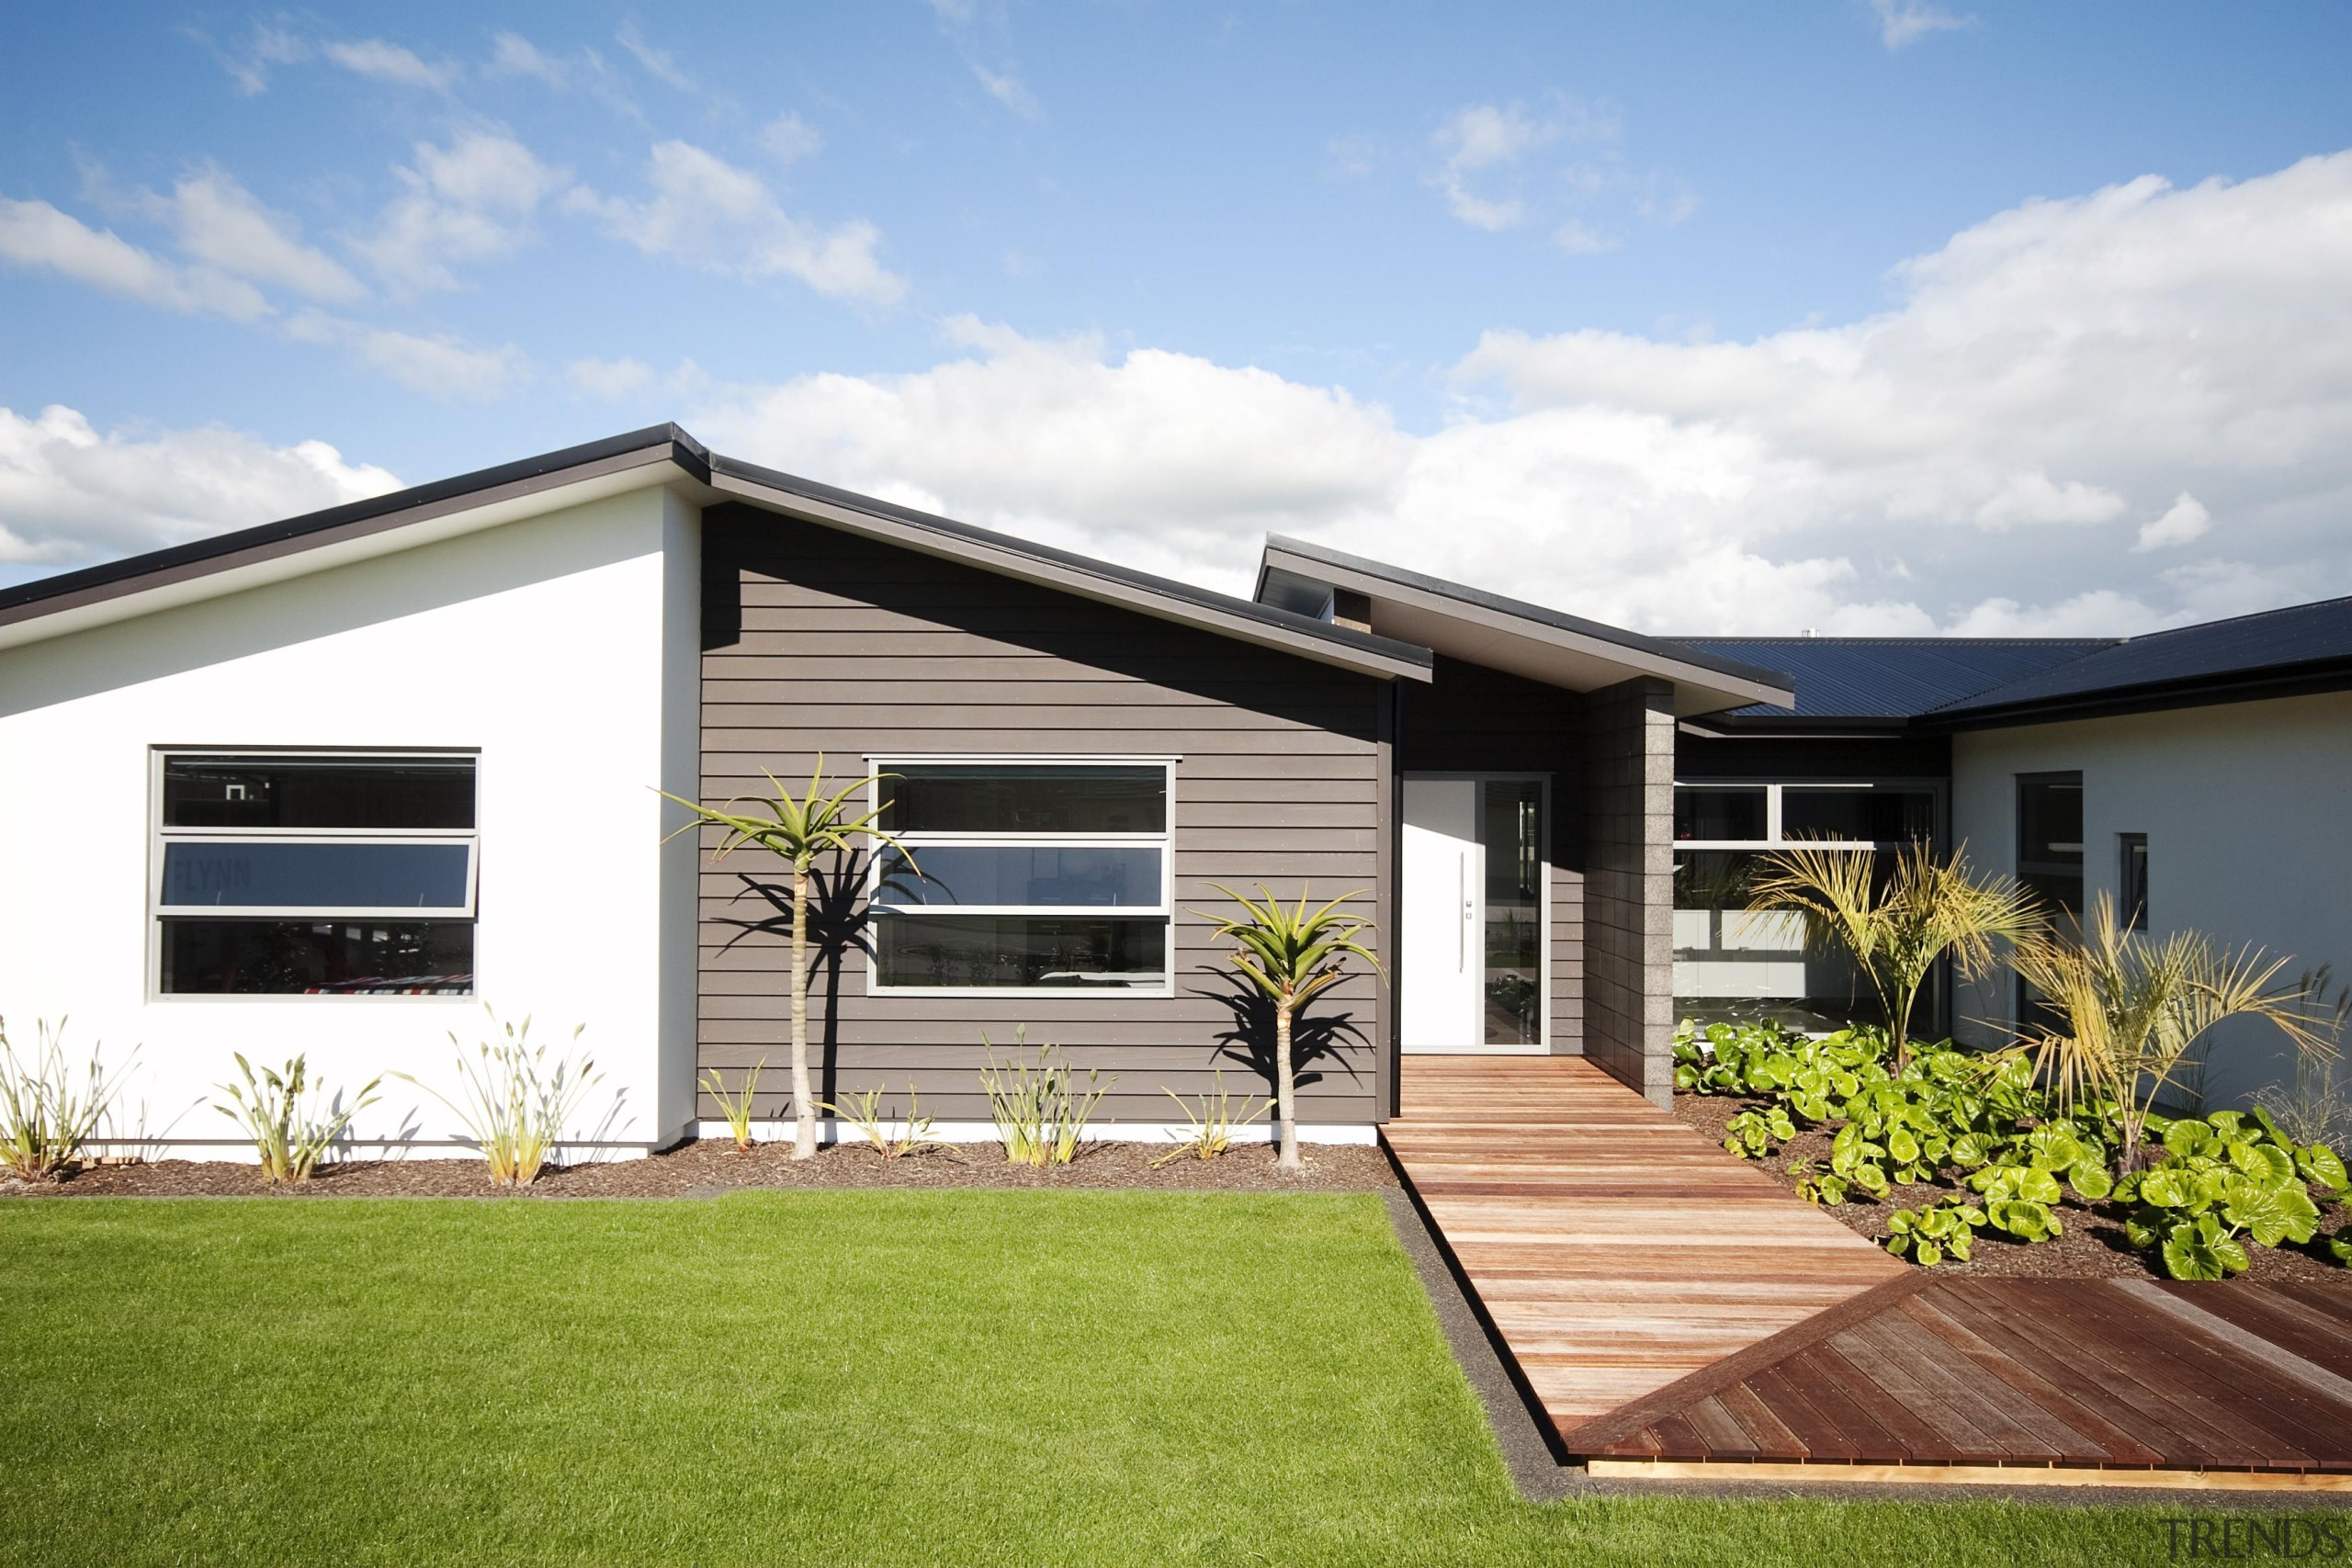 Popular mix of materials in this home built architecture, backyard, cottage, elevation, estate, facade, home, house, property, real estate, residential area, siding, window, yard, white